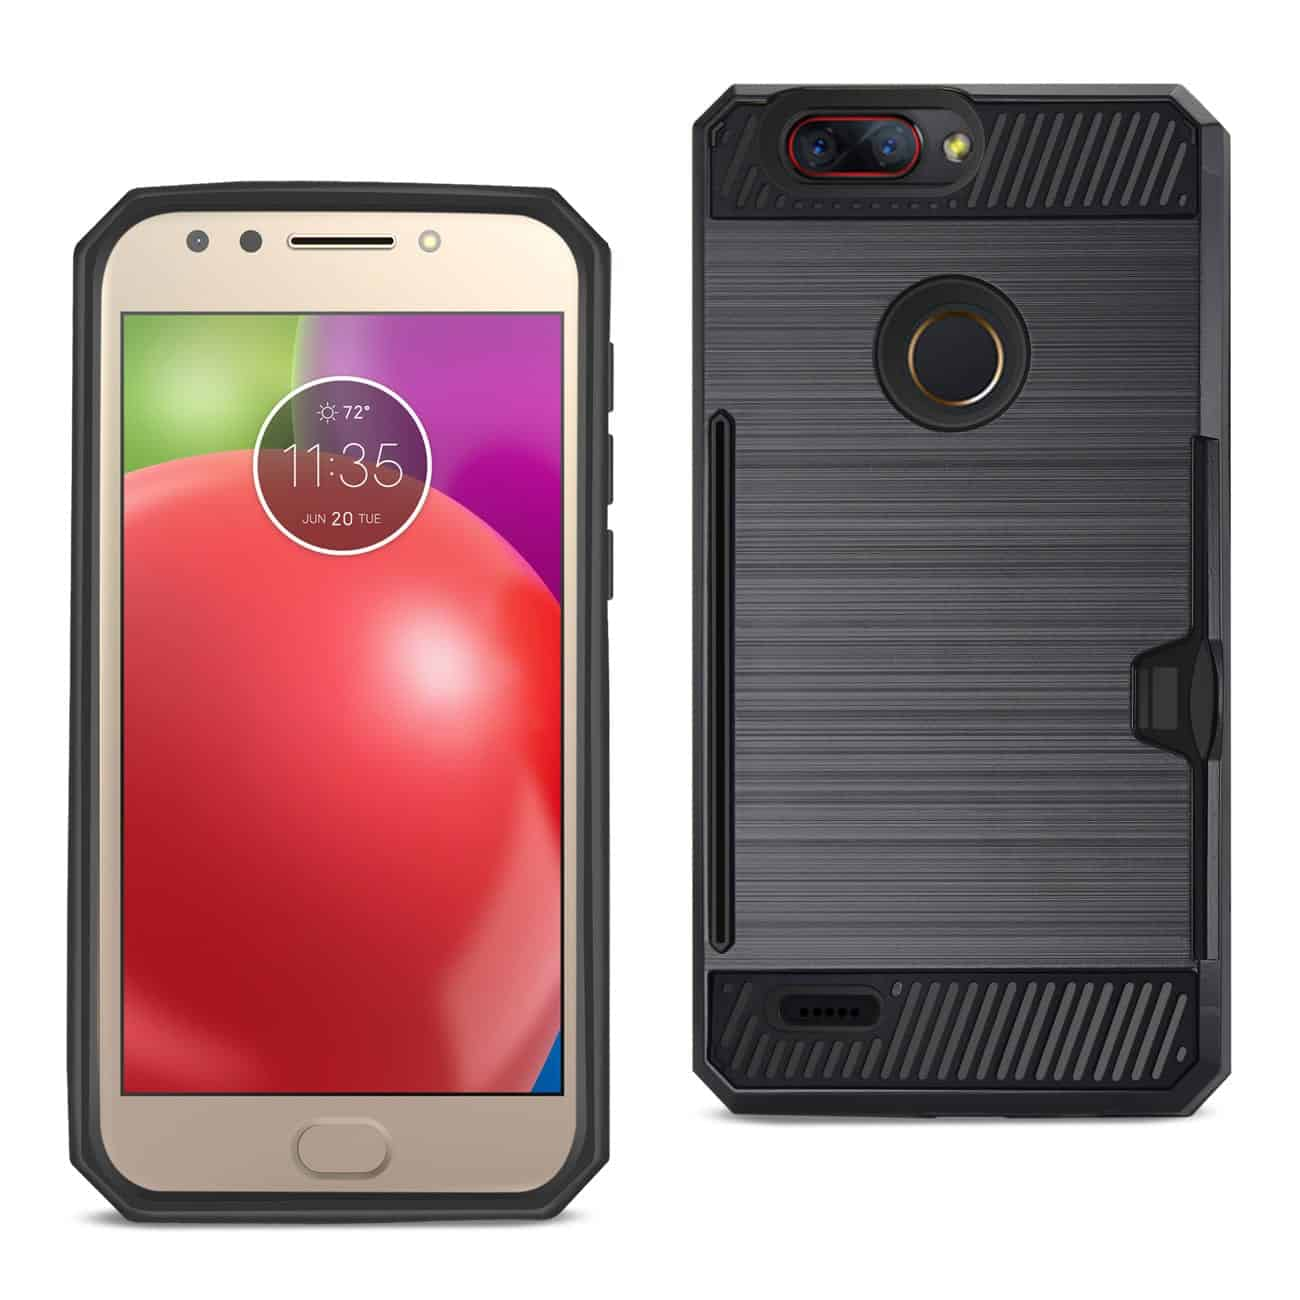 Zte Blade Z Max/Z982/Zte Sequoia Slim Armor Hybrid Case With Card Holder In Black